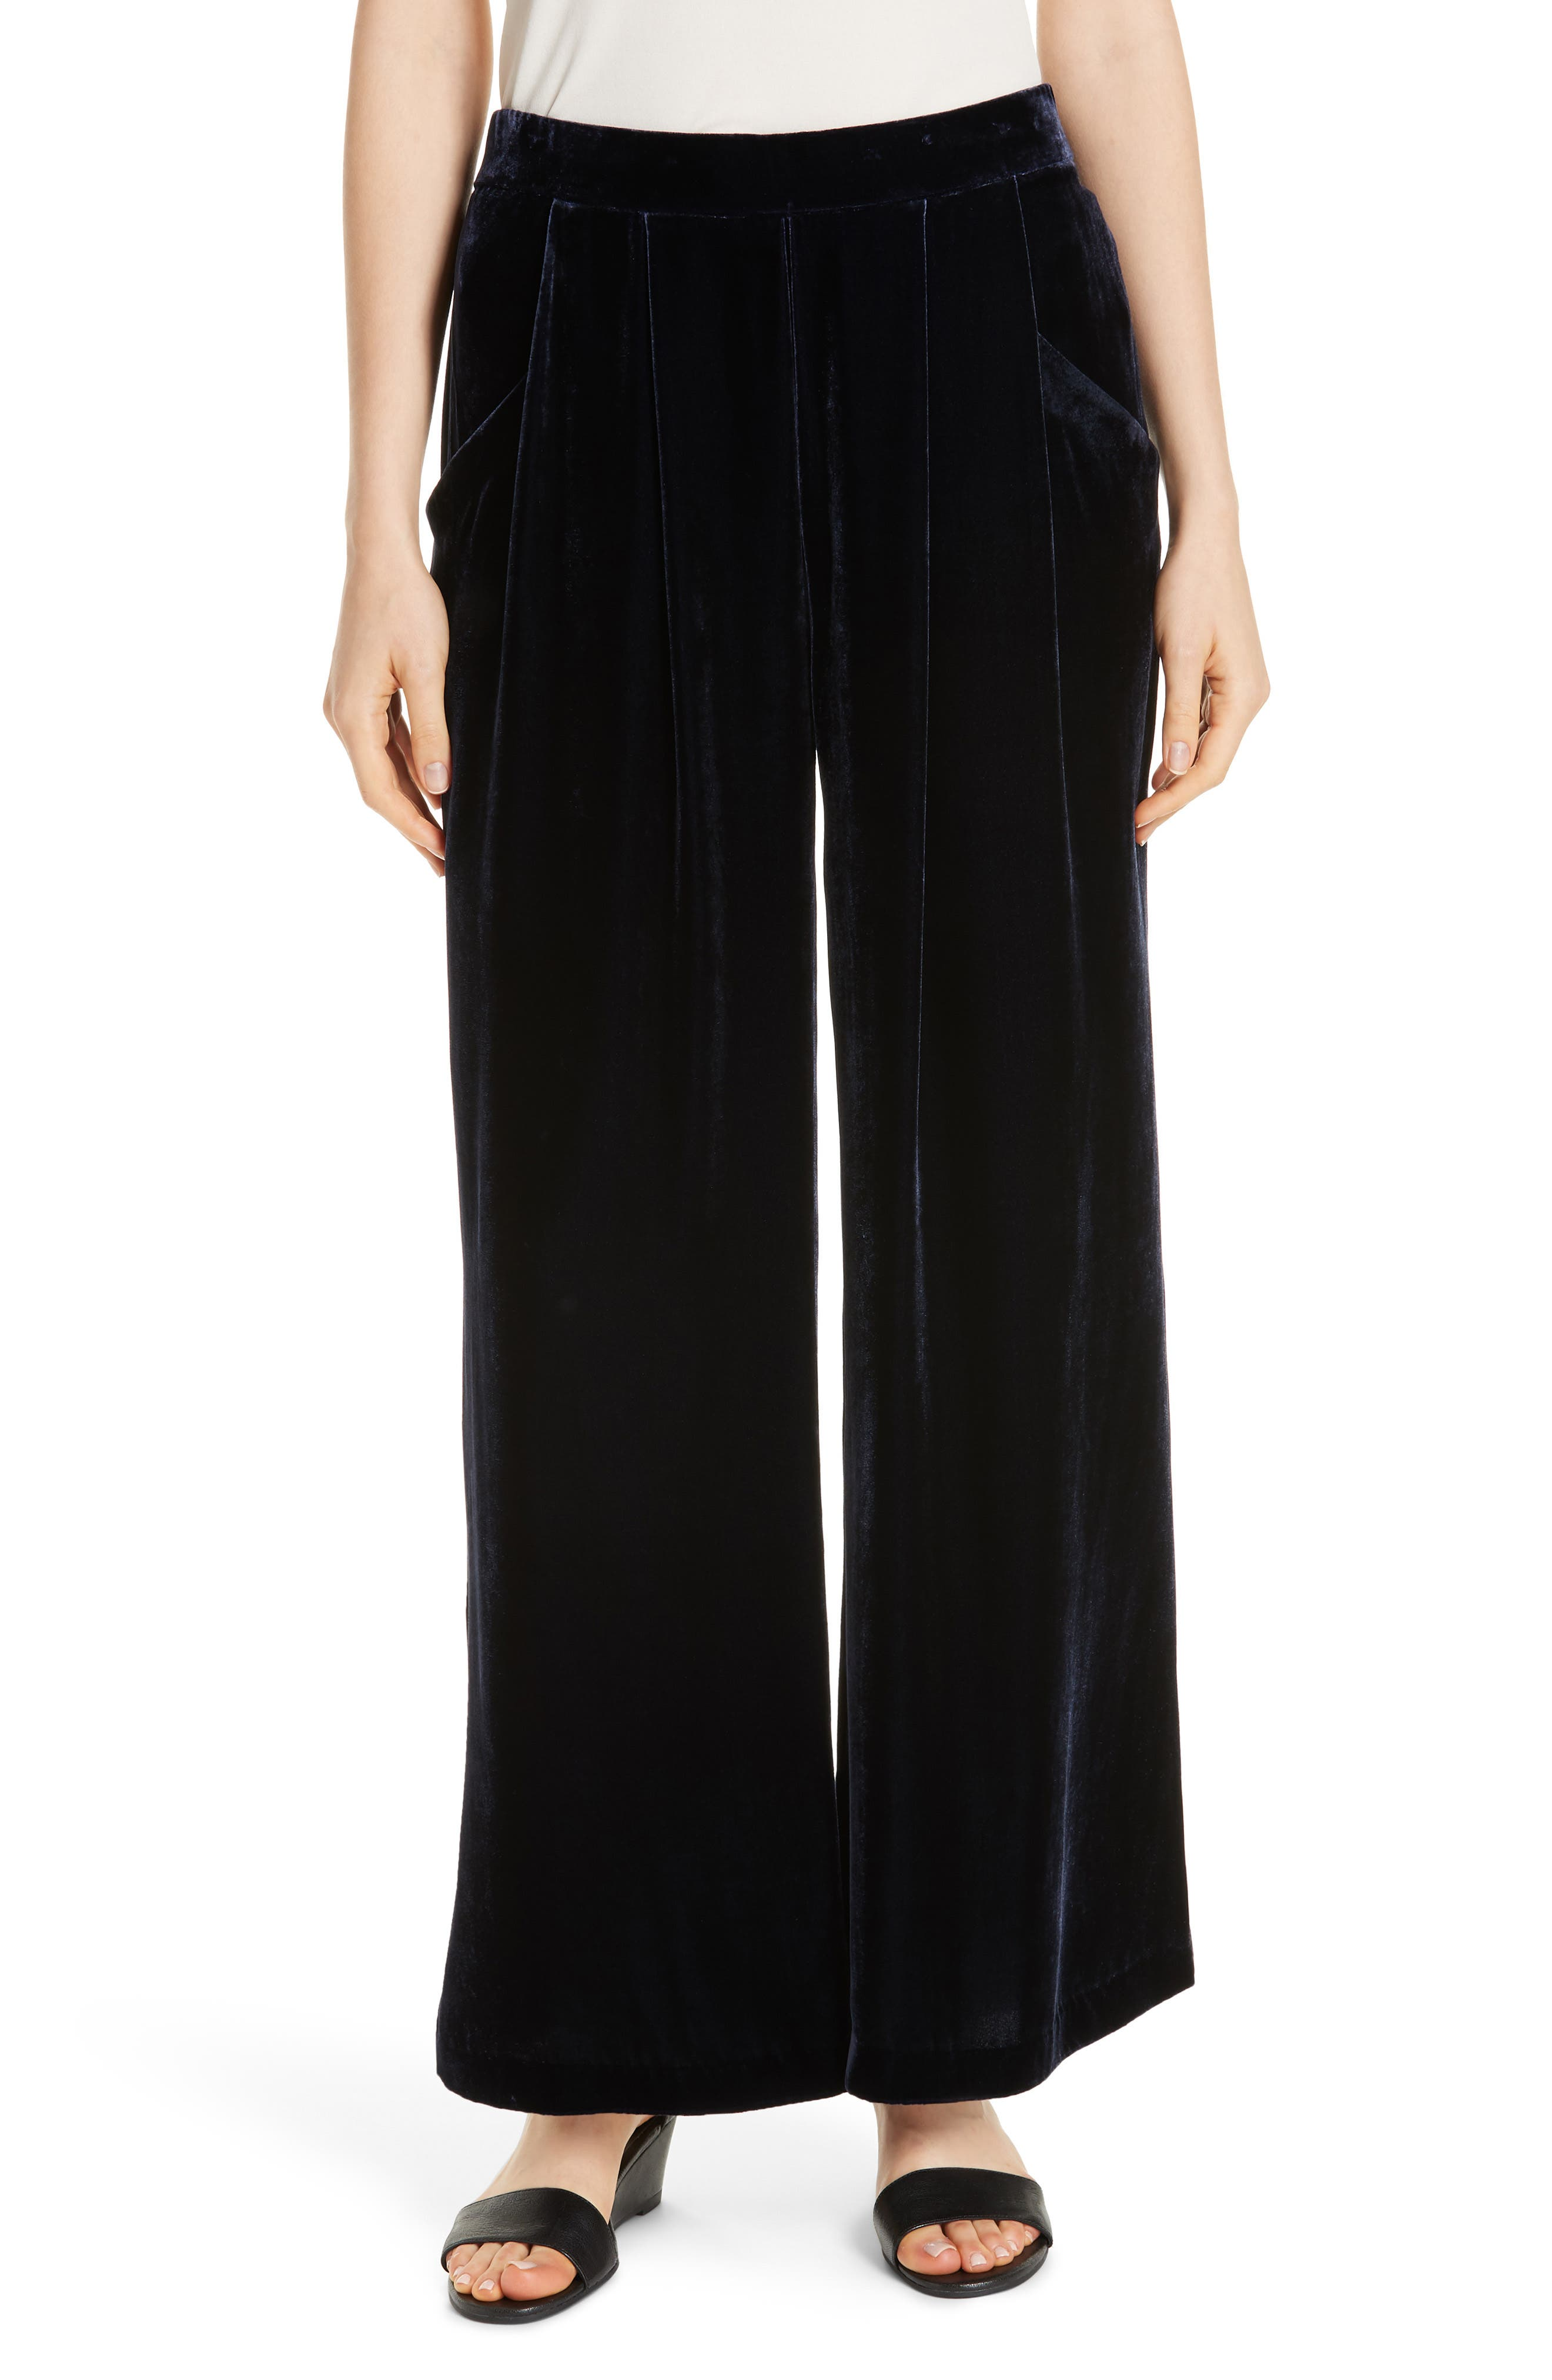 Wide Leg pants for petites